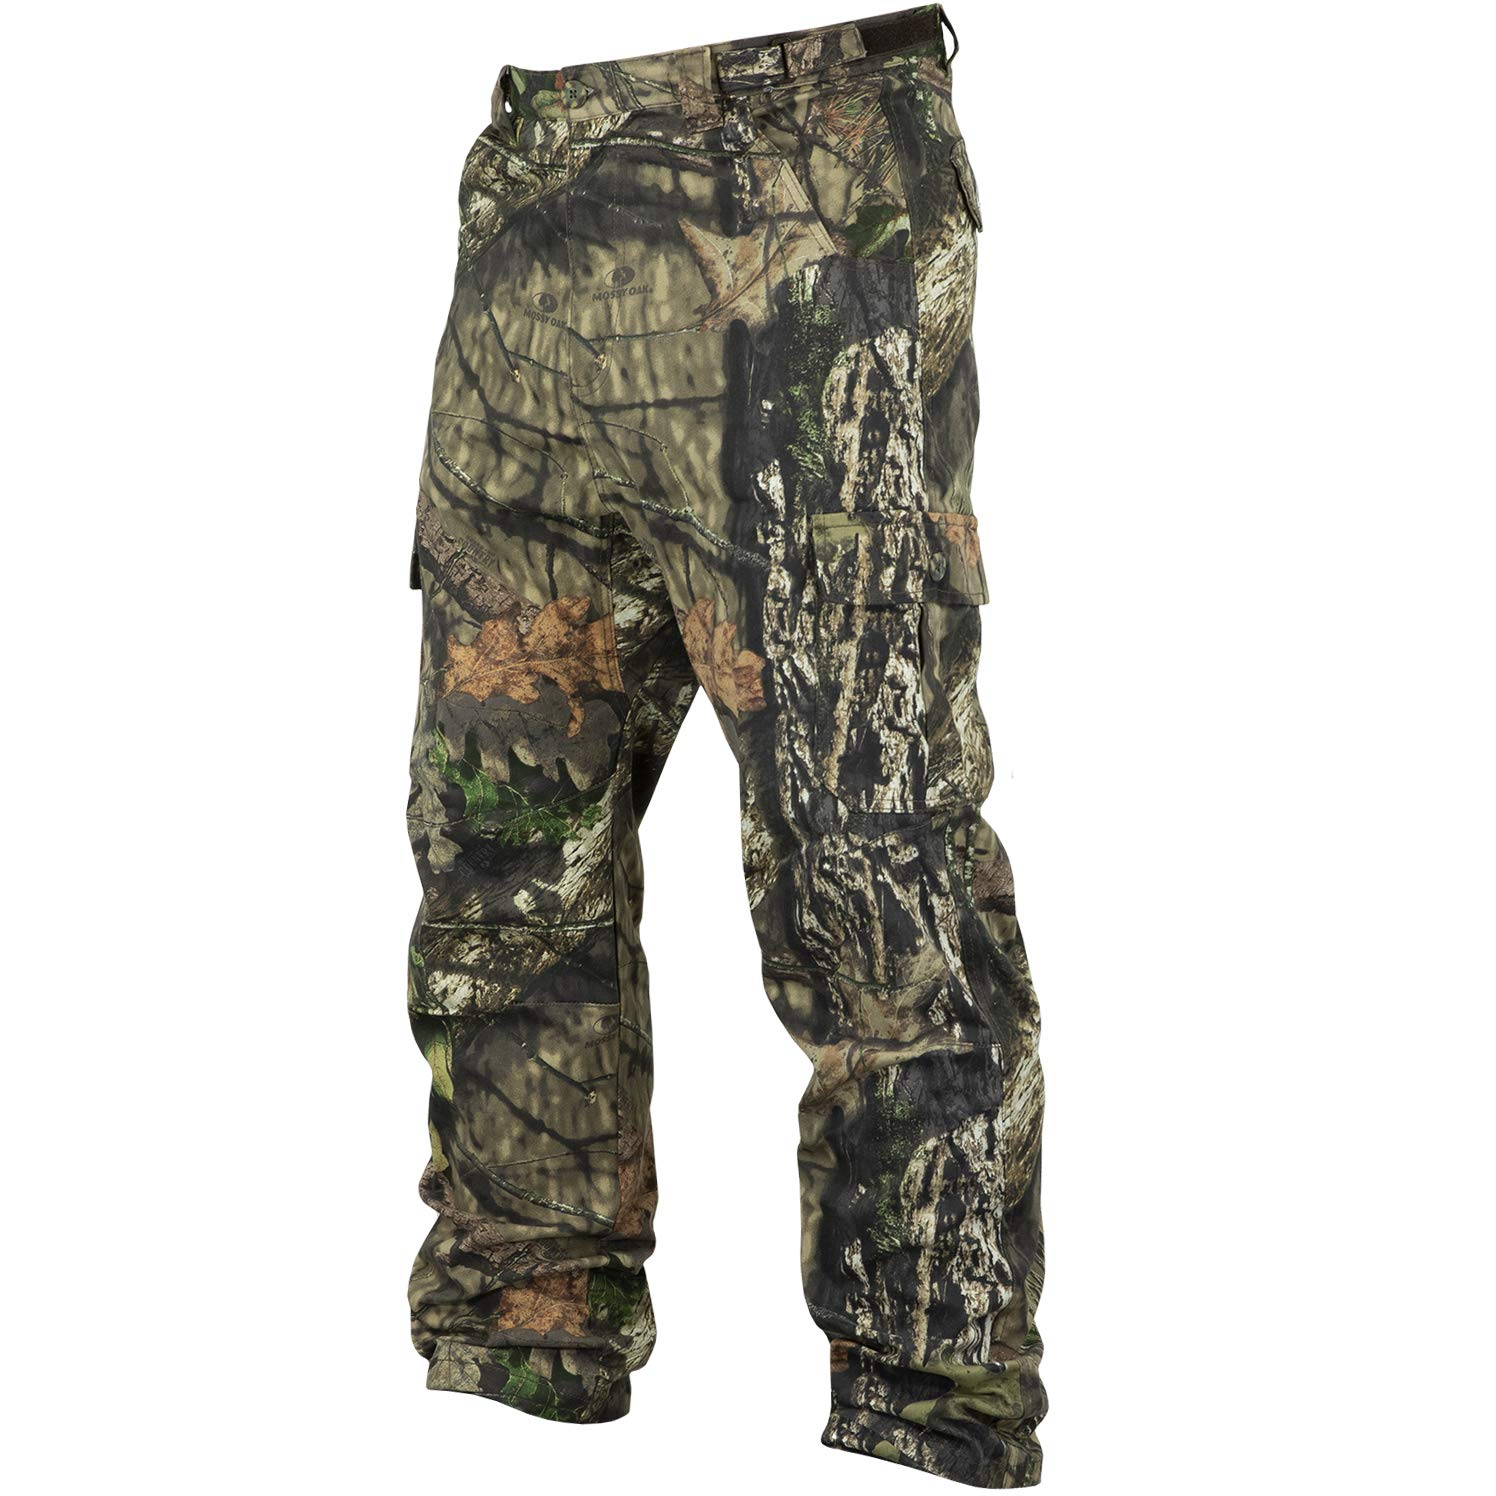 Mossy Oak Men's Cotton Mill 2.0 Camouflage Hunting Pant in Multiple Camo Patterns